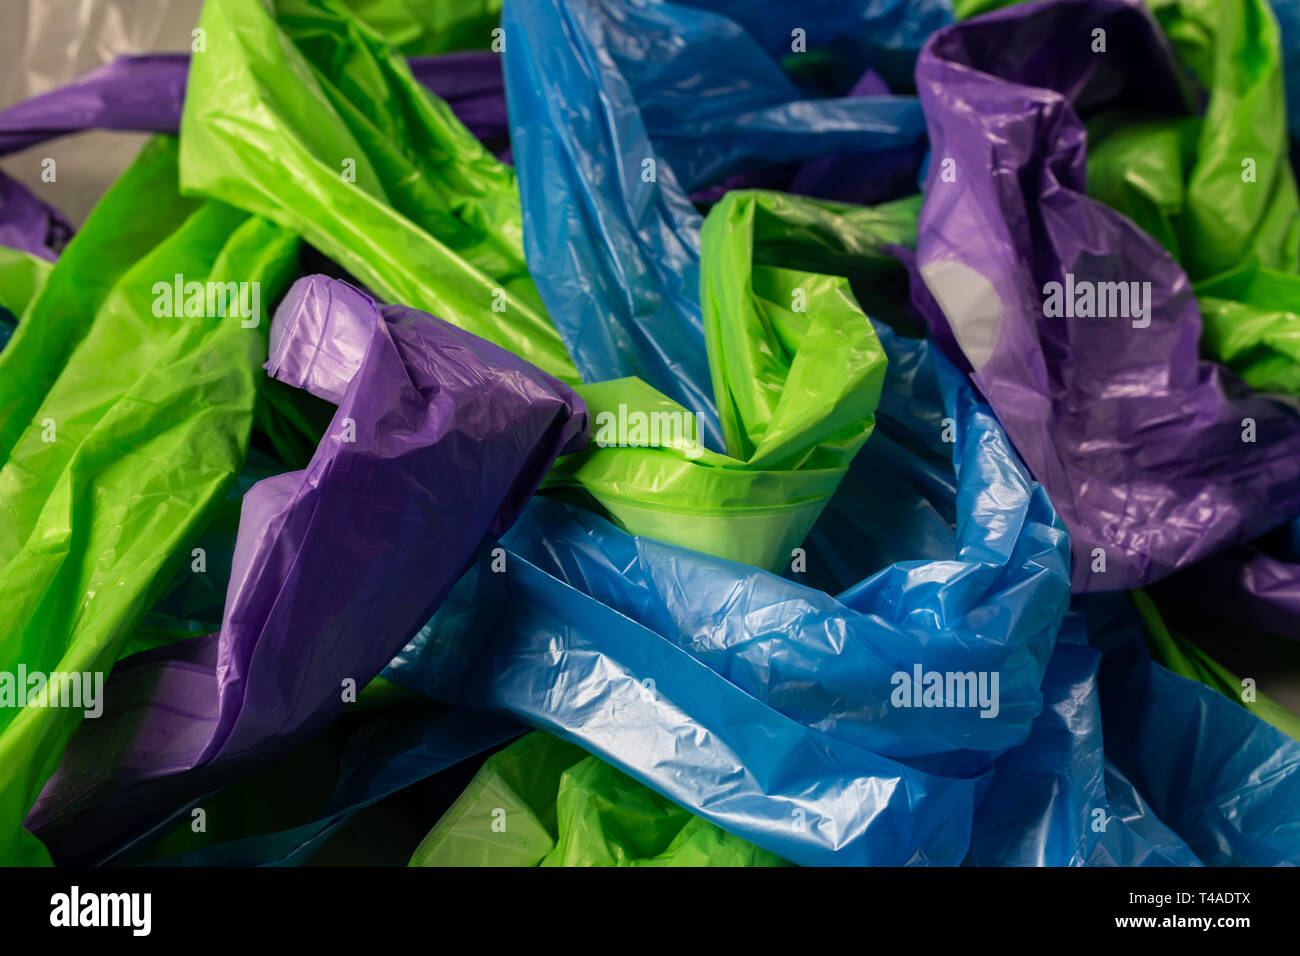 Intertwined bright bags lying as an example and reminder - Stock Image